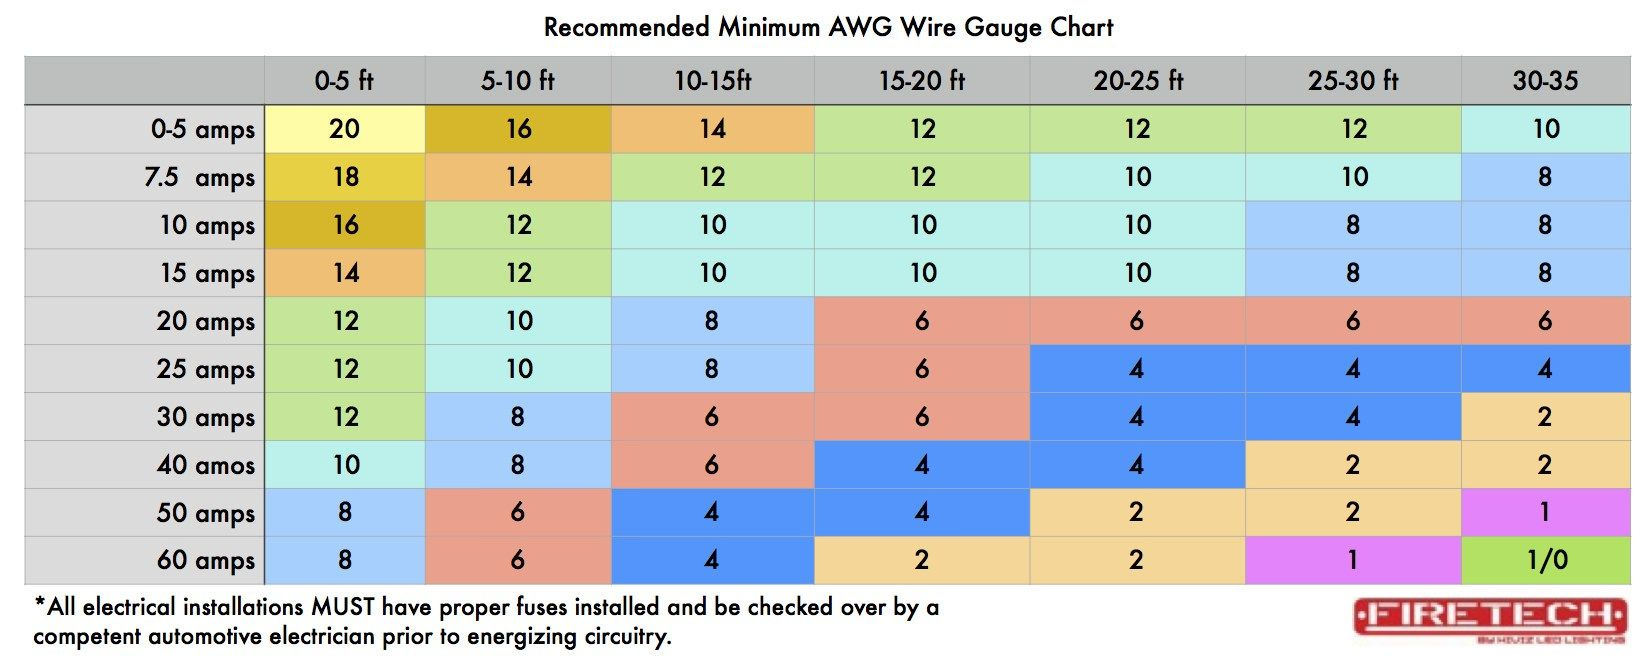 Image result for wire size chart sizing charts pinterest chart image result for wire size chart keyboard keysfo Images